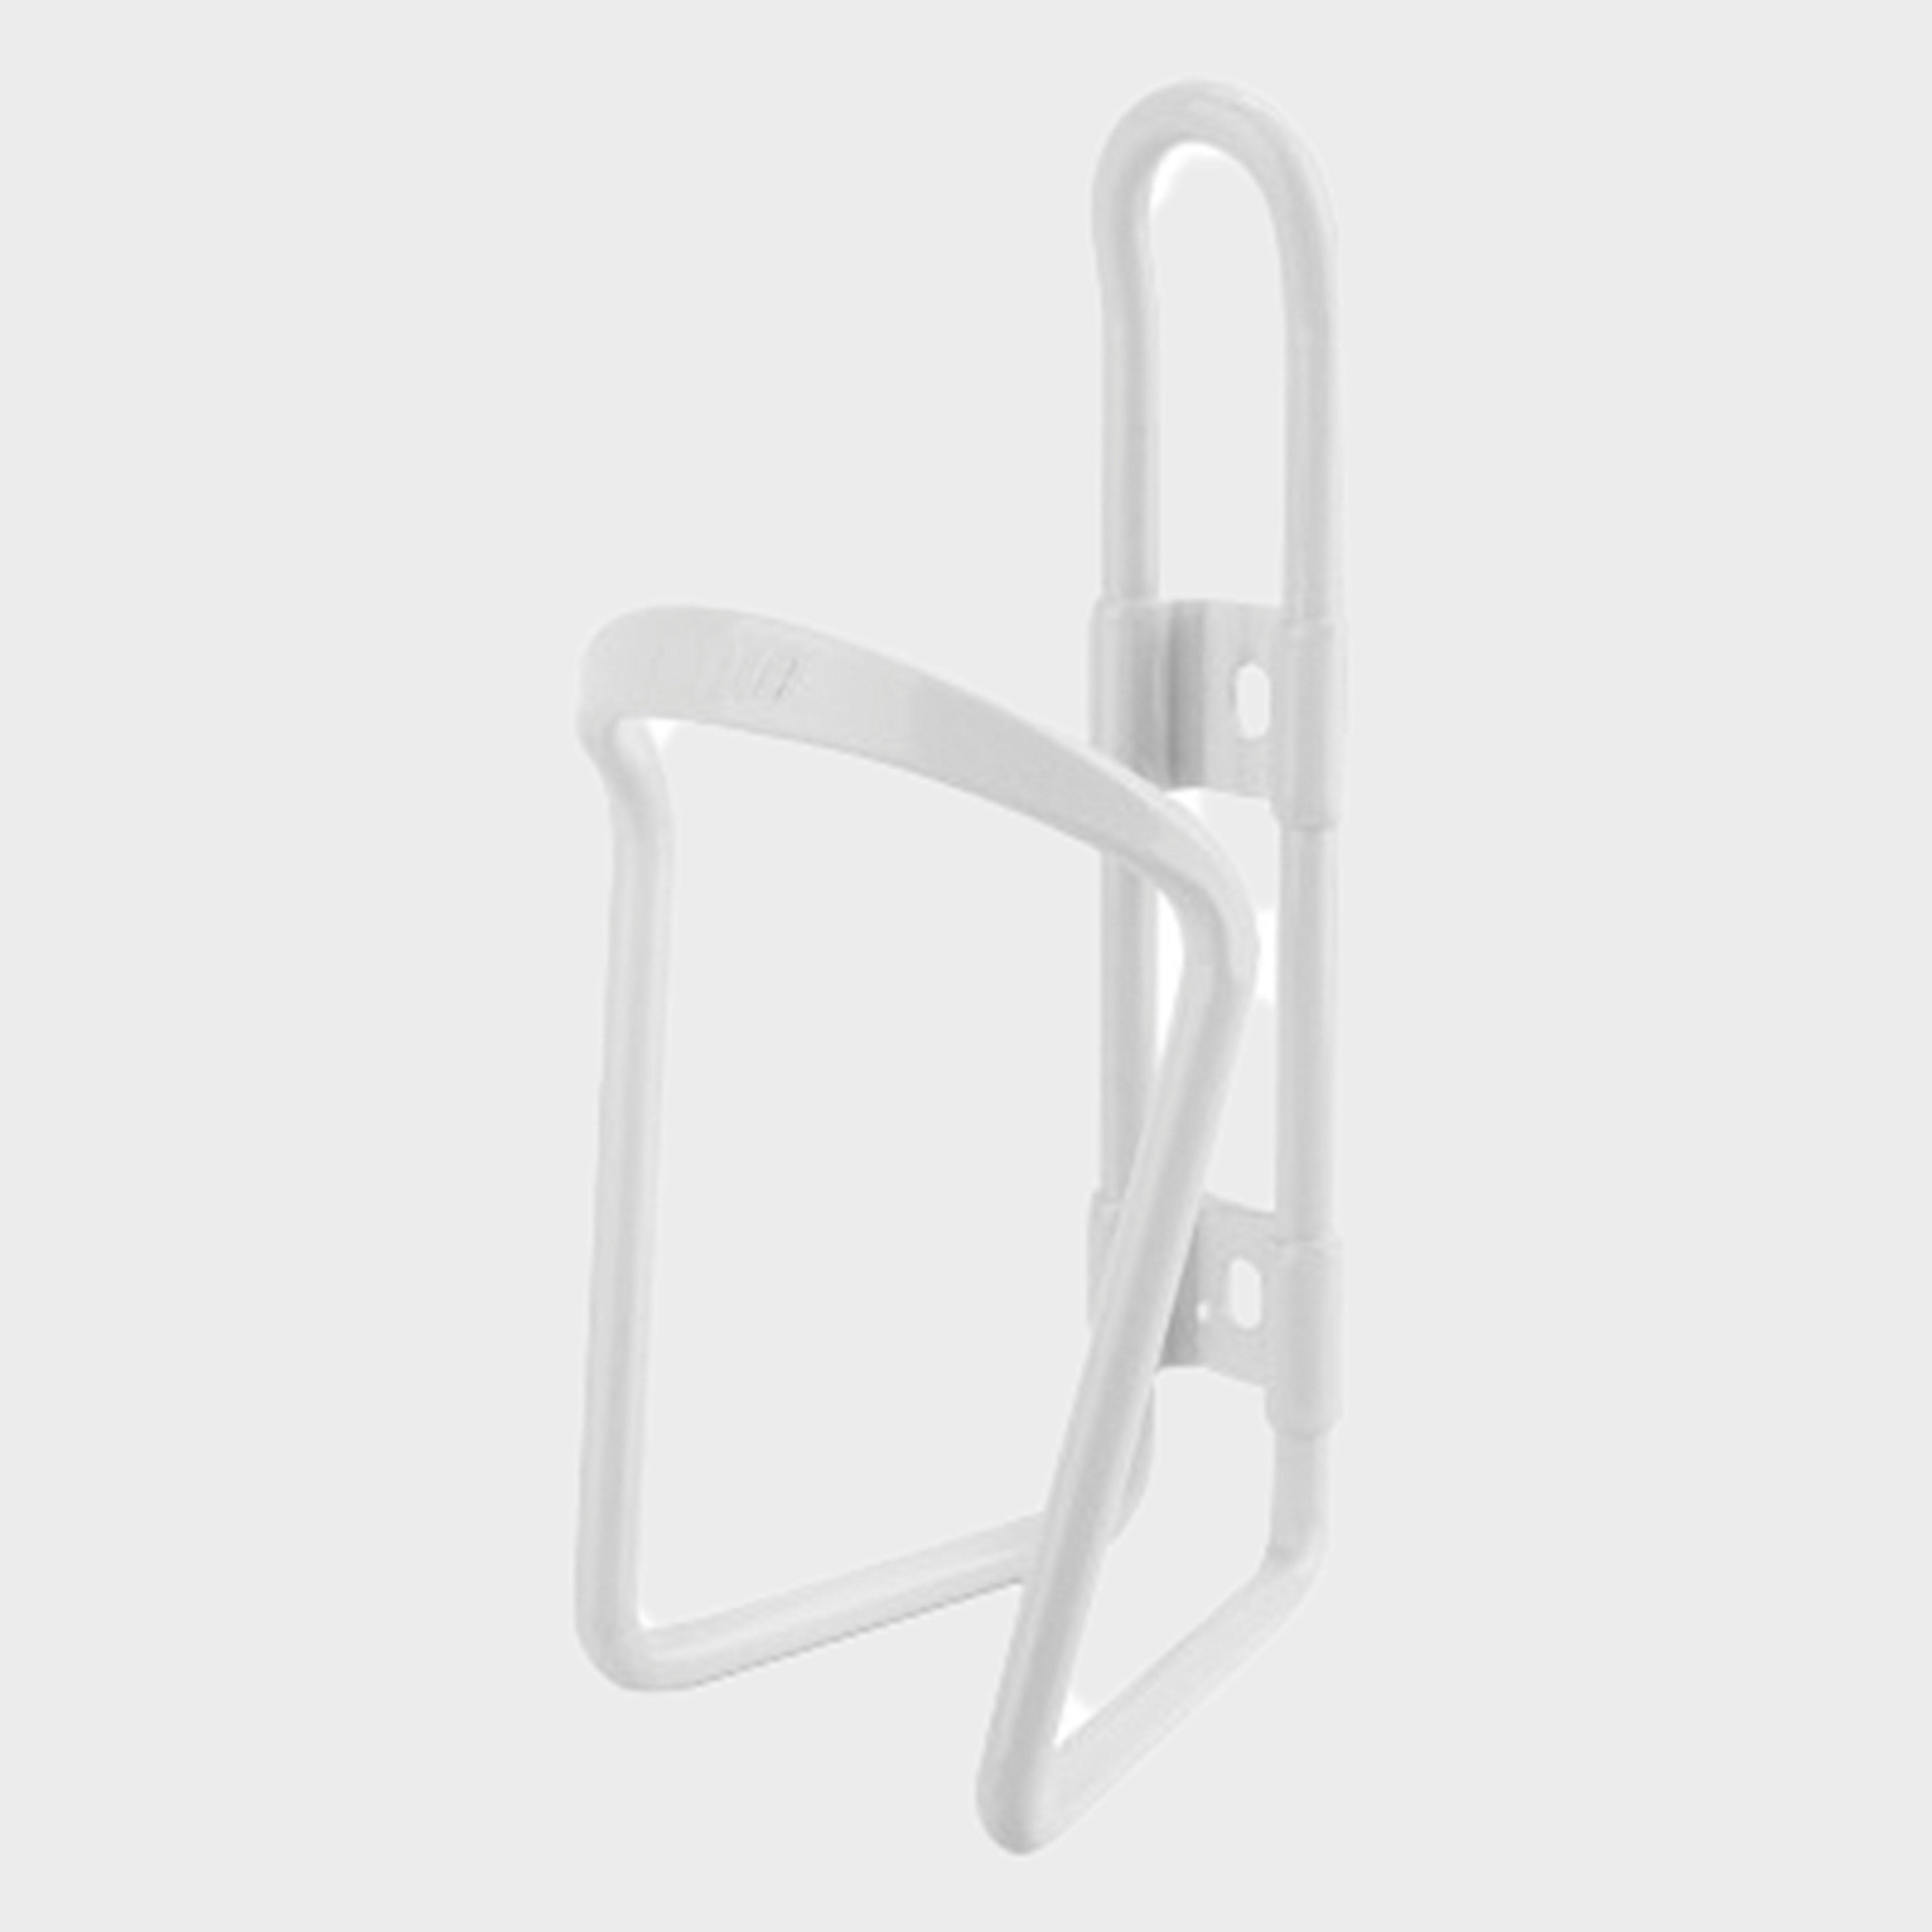 Delta Delta Alloy Bottle Cage - White, White